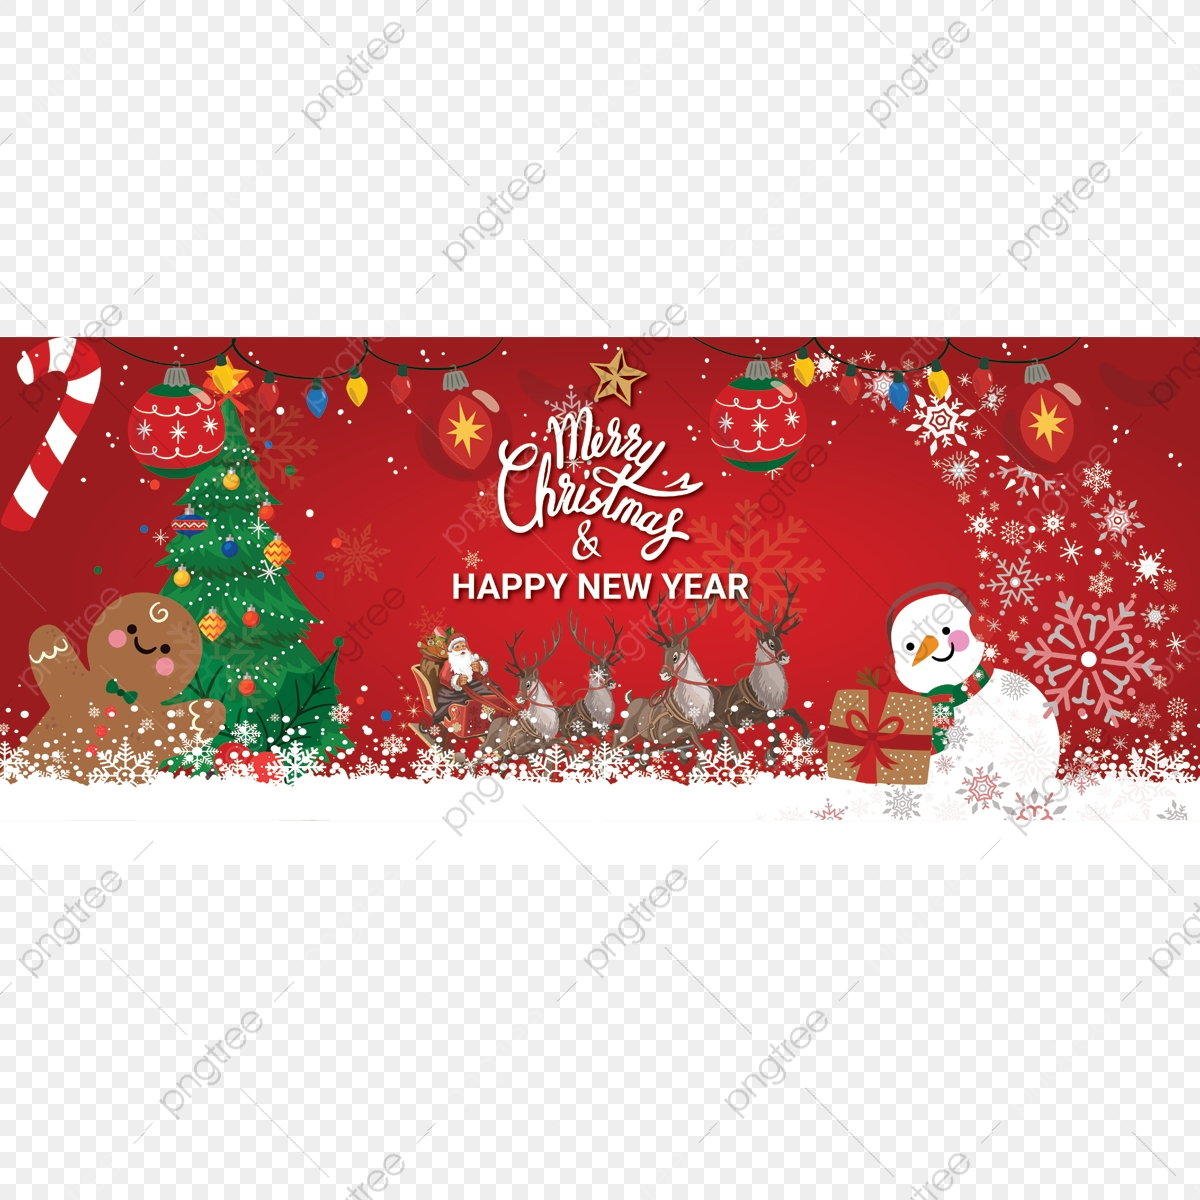 Banner Merry Christmas, Merry Christmas, Happy New Year PNG.